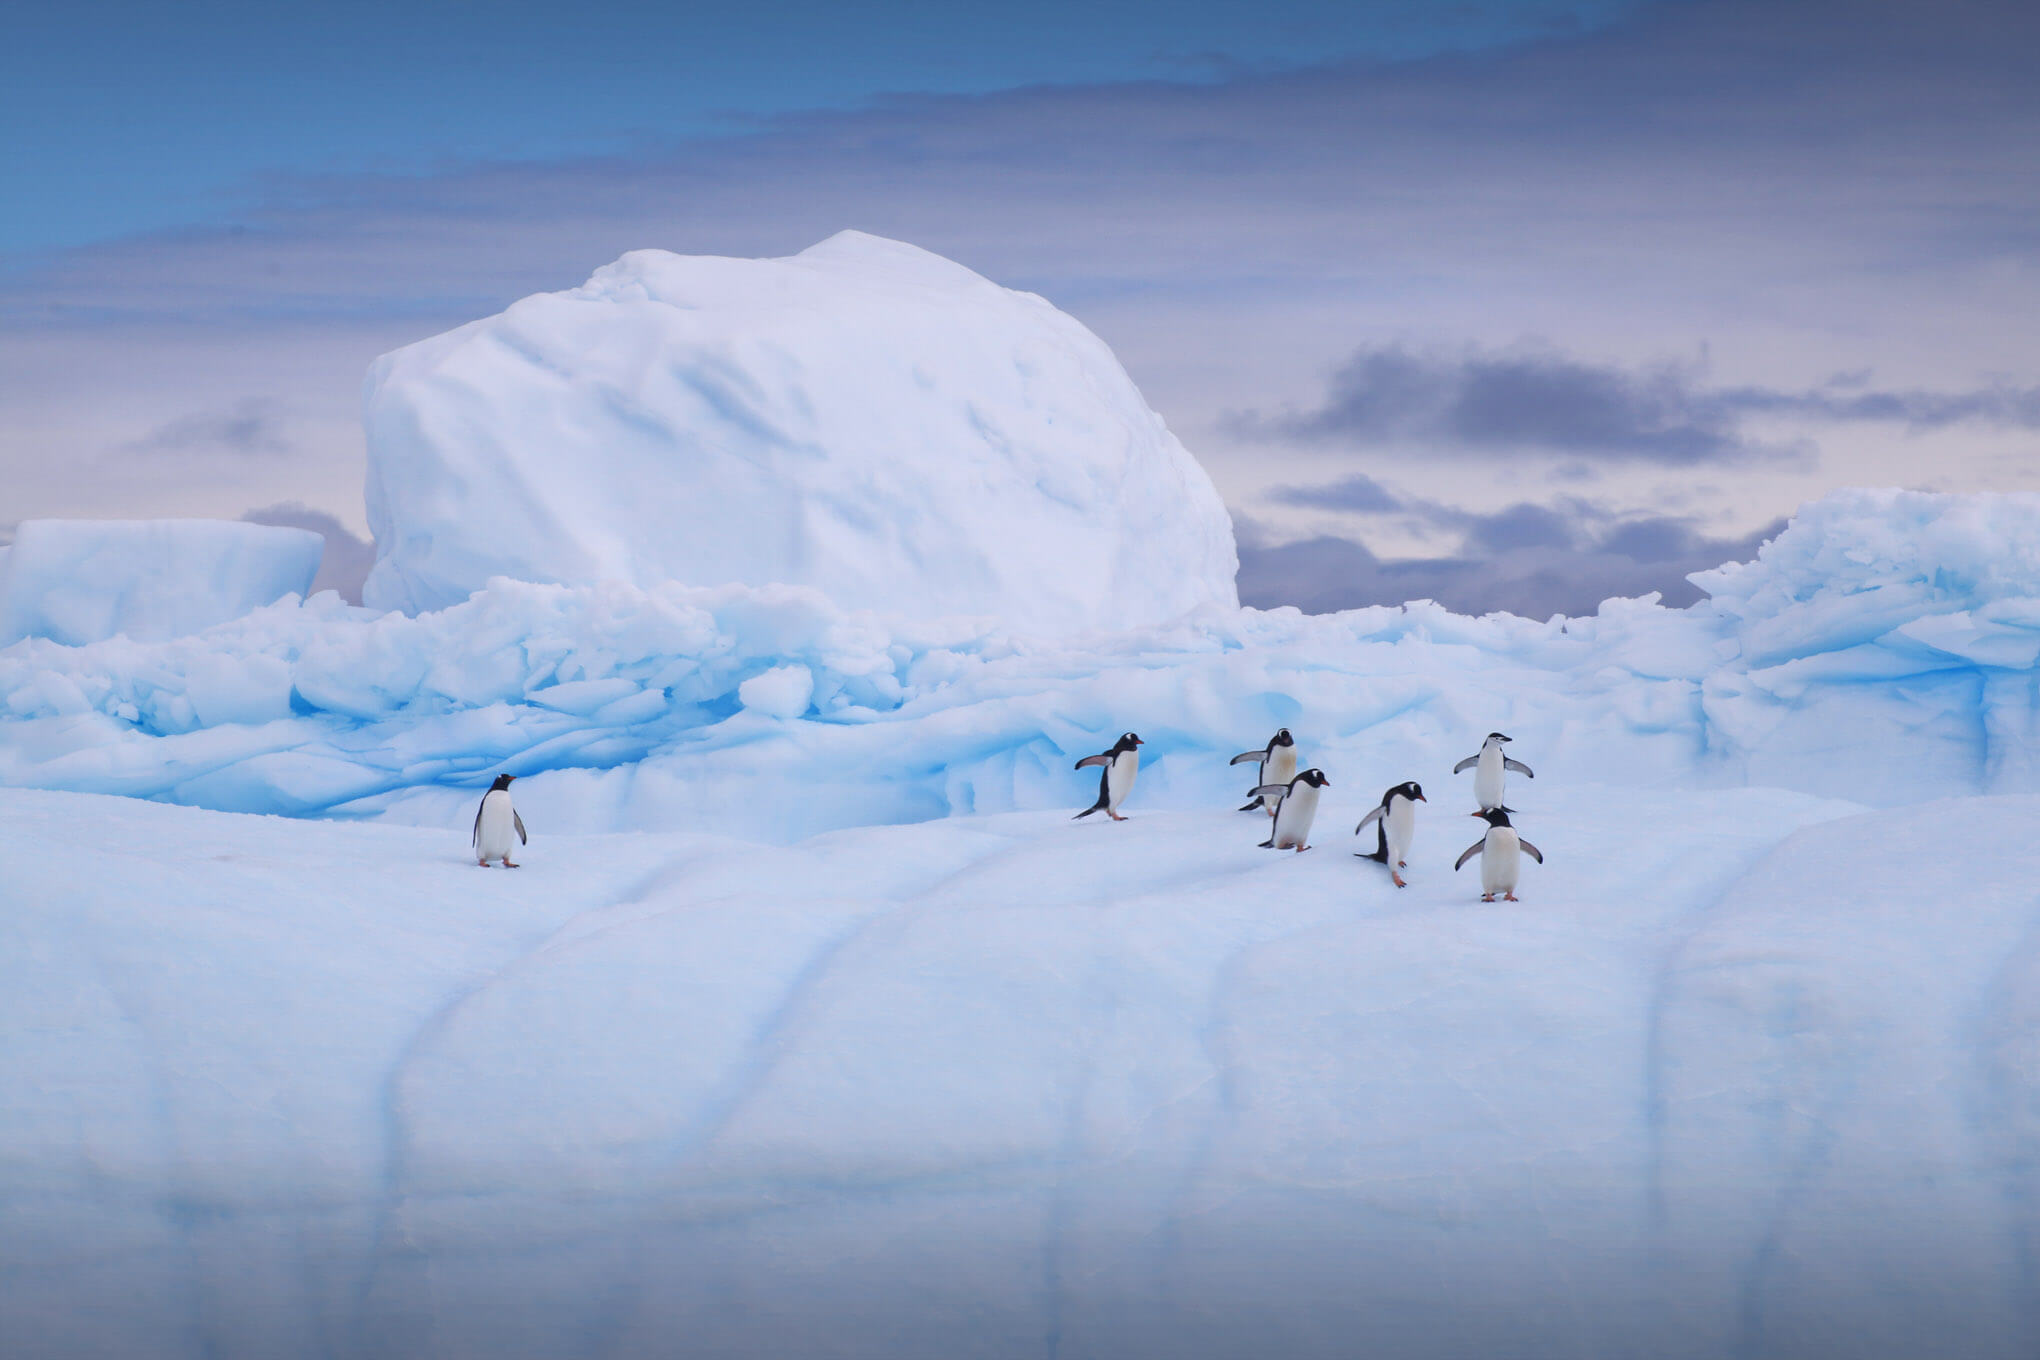 Penguins during the Antarctica Photo Tour with Marco Grassi Photography